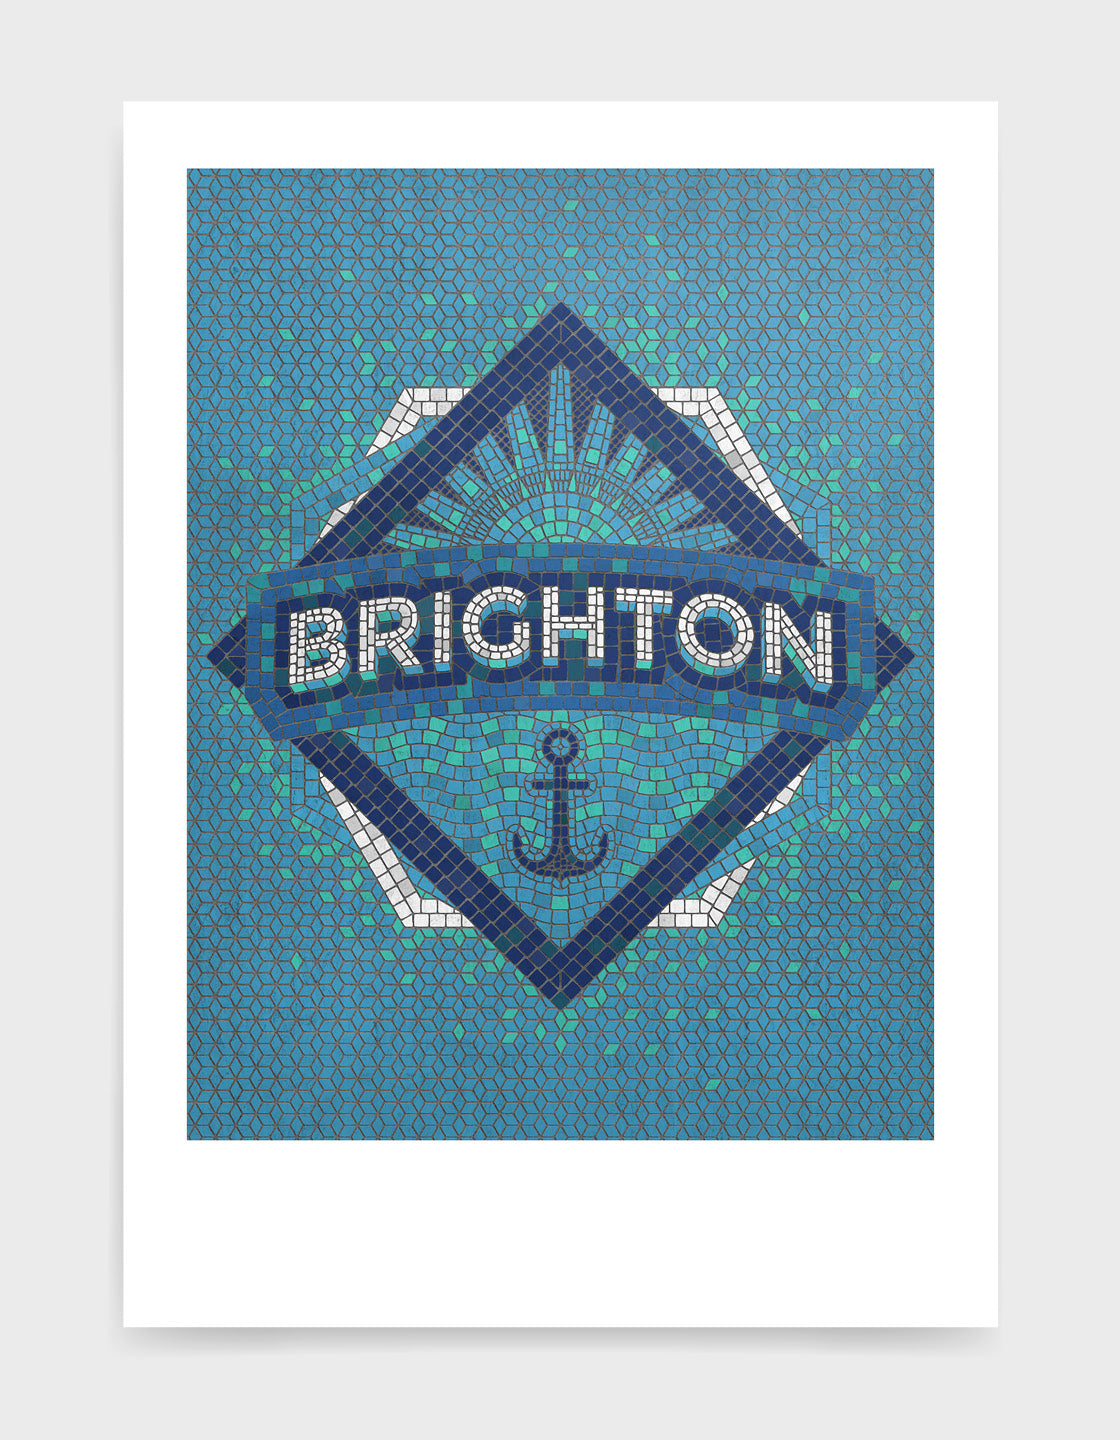 Blue mosaic art print with Brighton text and an anchor